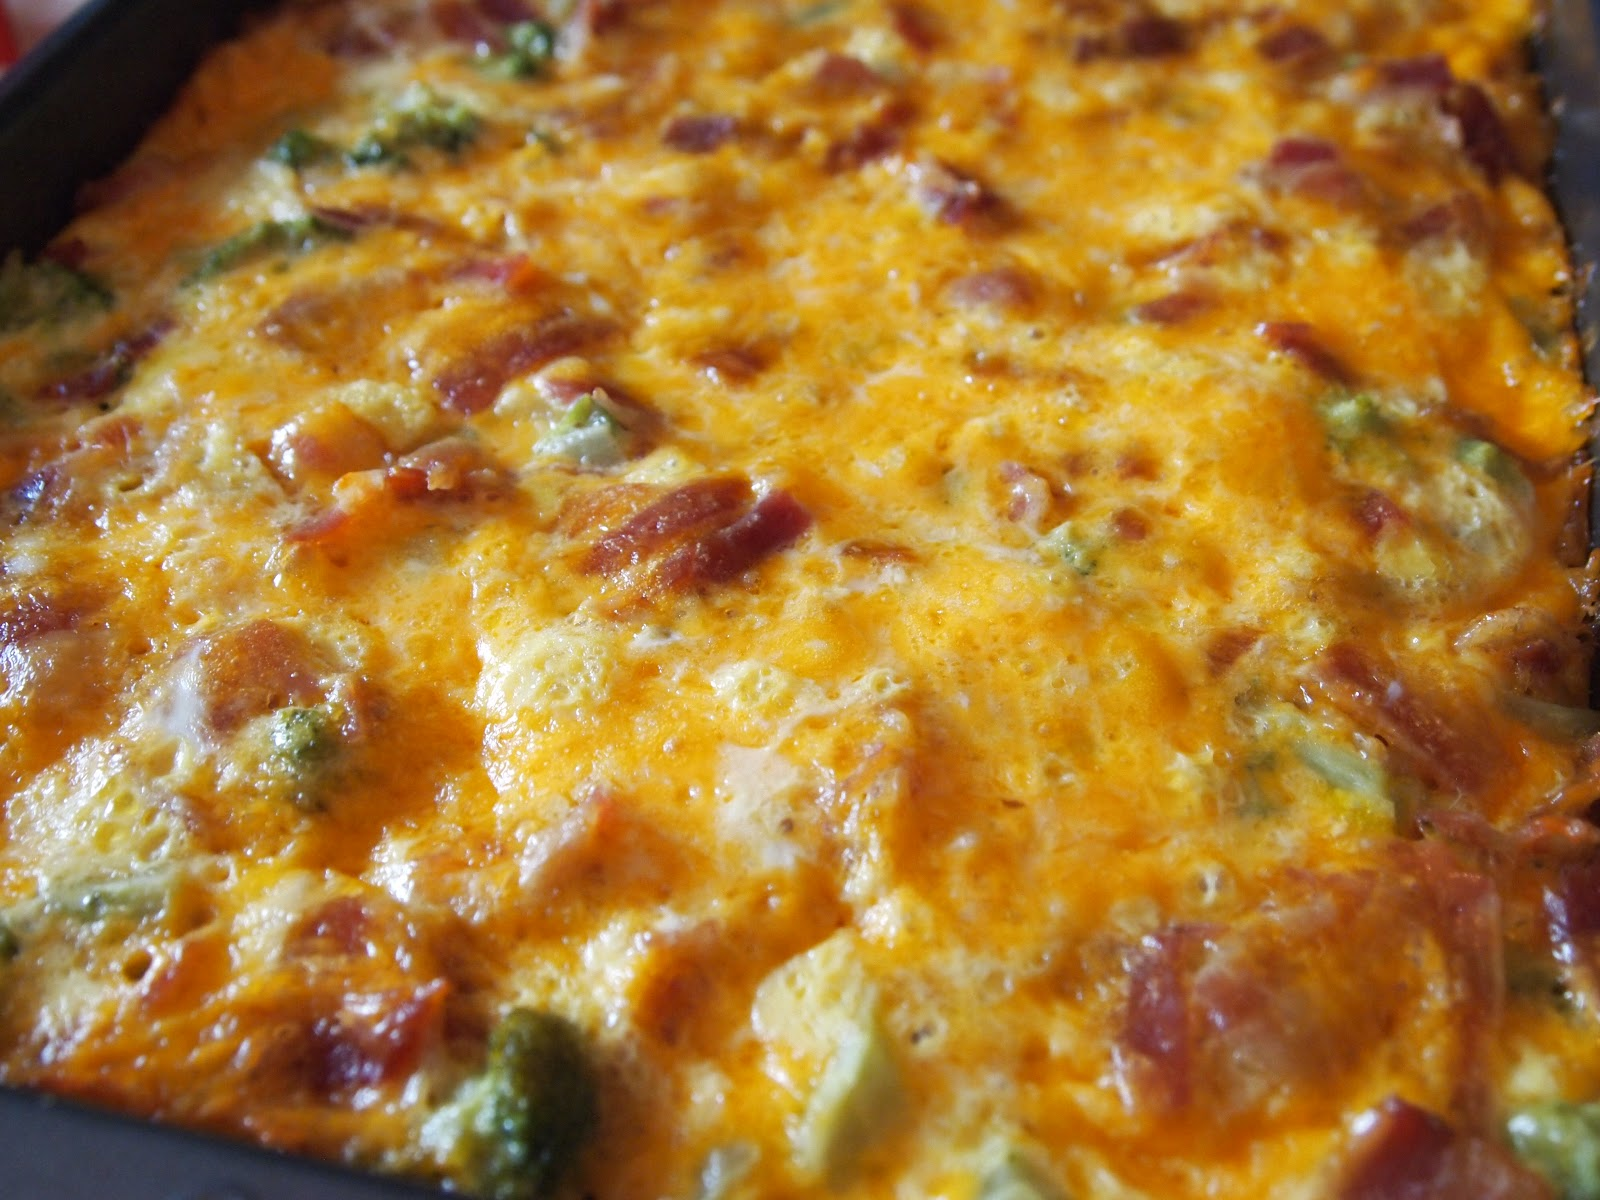 The Early Bird Baker: Tater Tot Breakfast Casserole